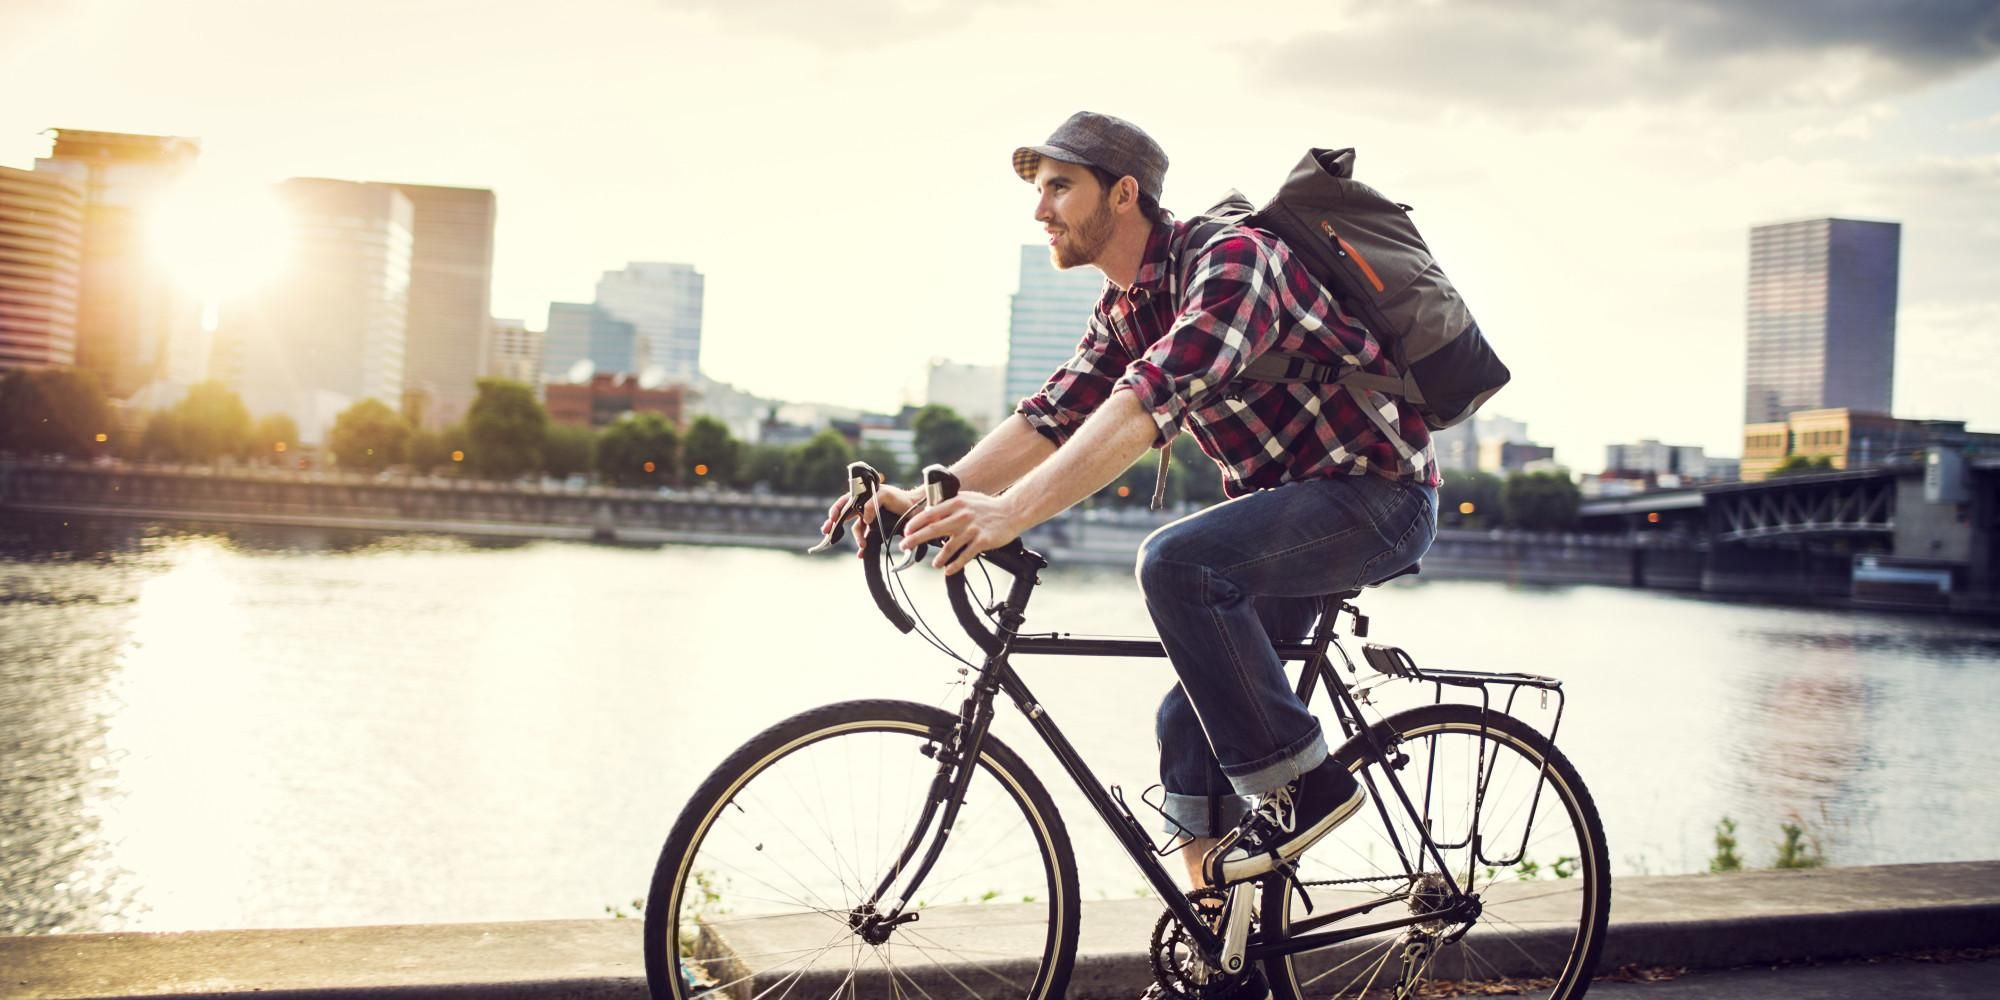 The Top 5 Best Bike Cities In The U S Are 1 Chicago 2 San